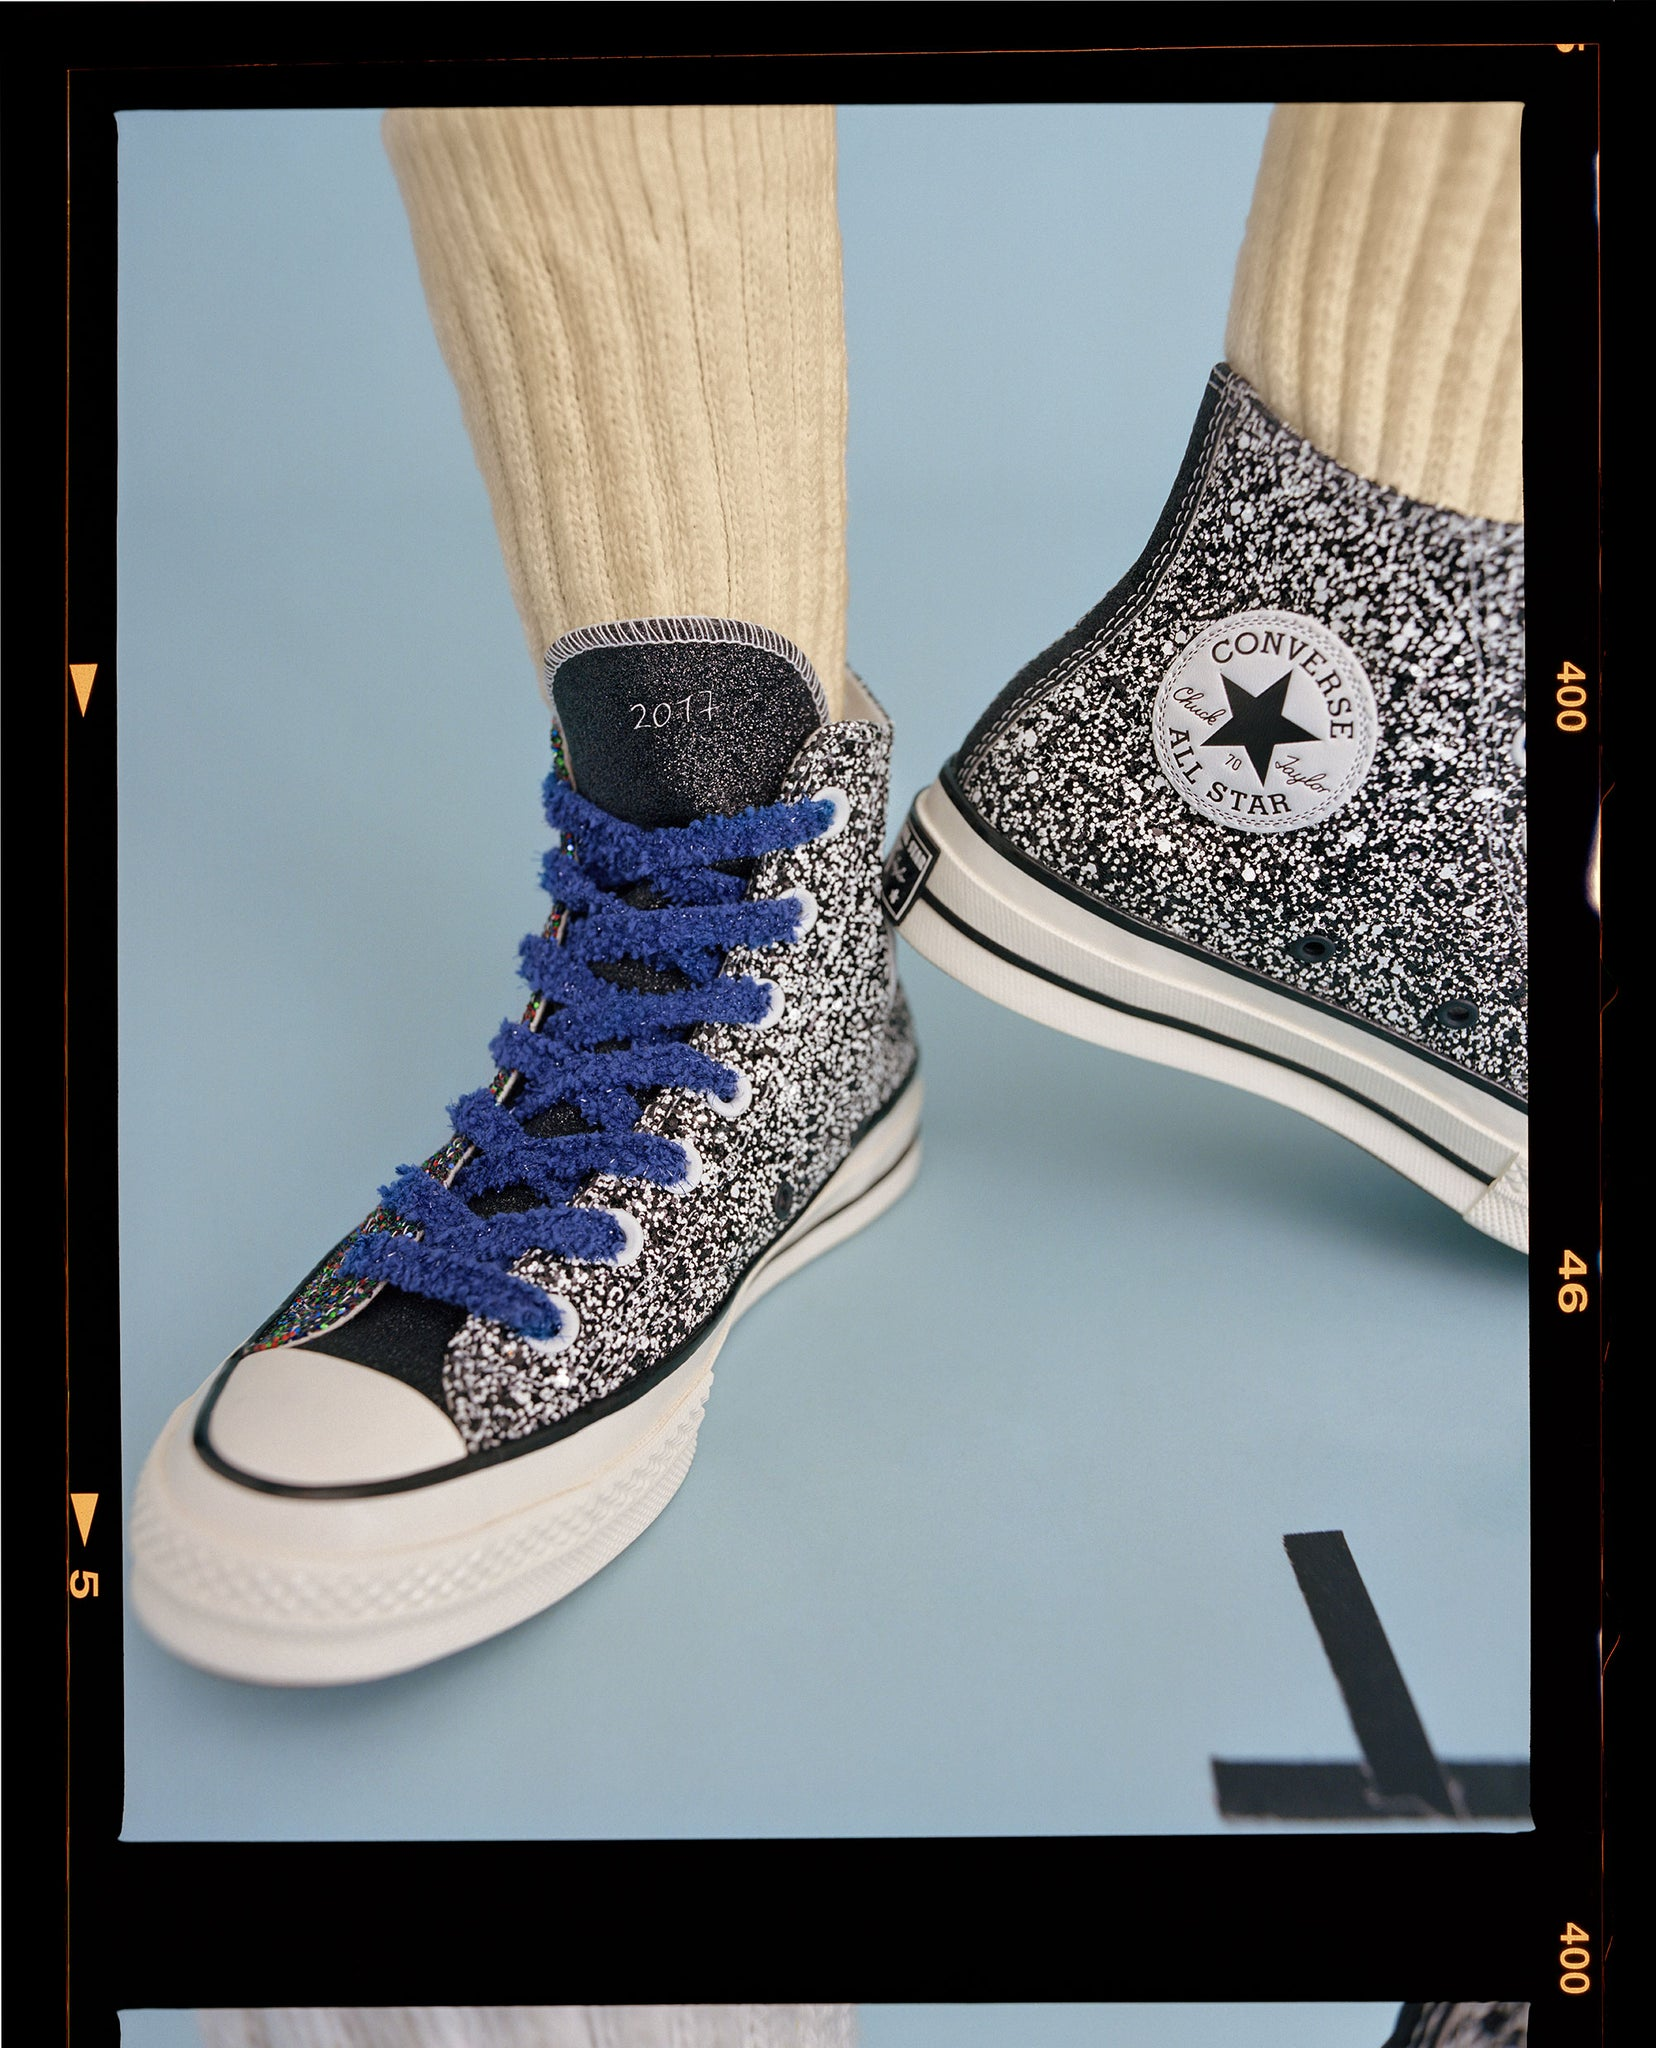 J.W. Anderson x Converse Returns With